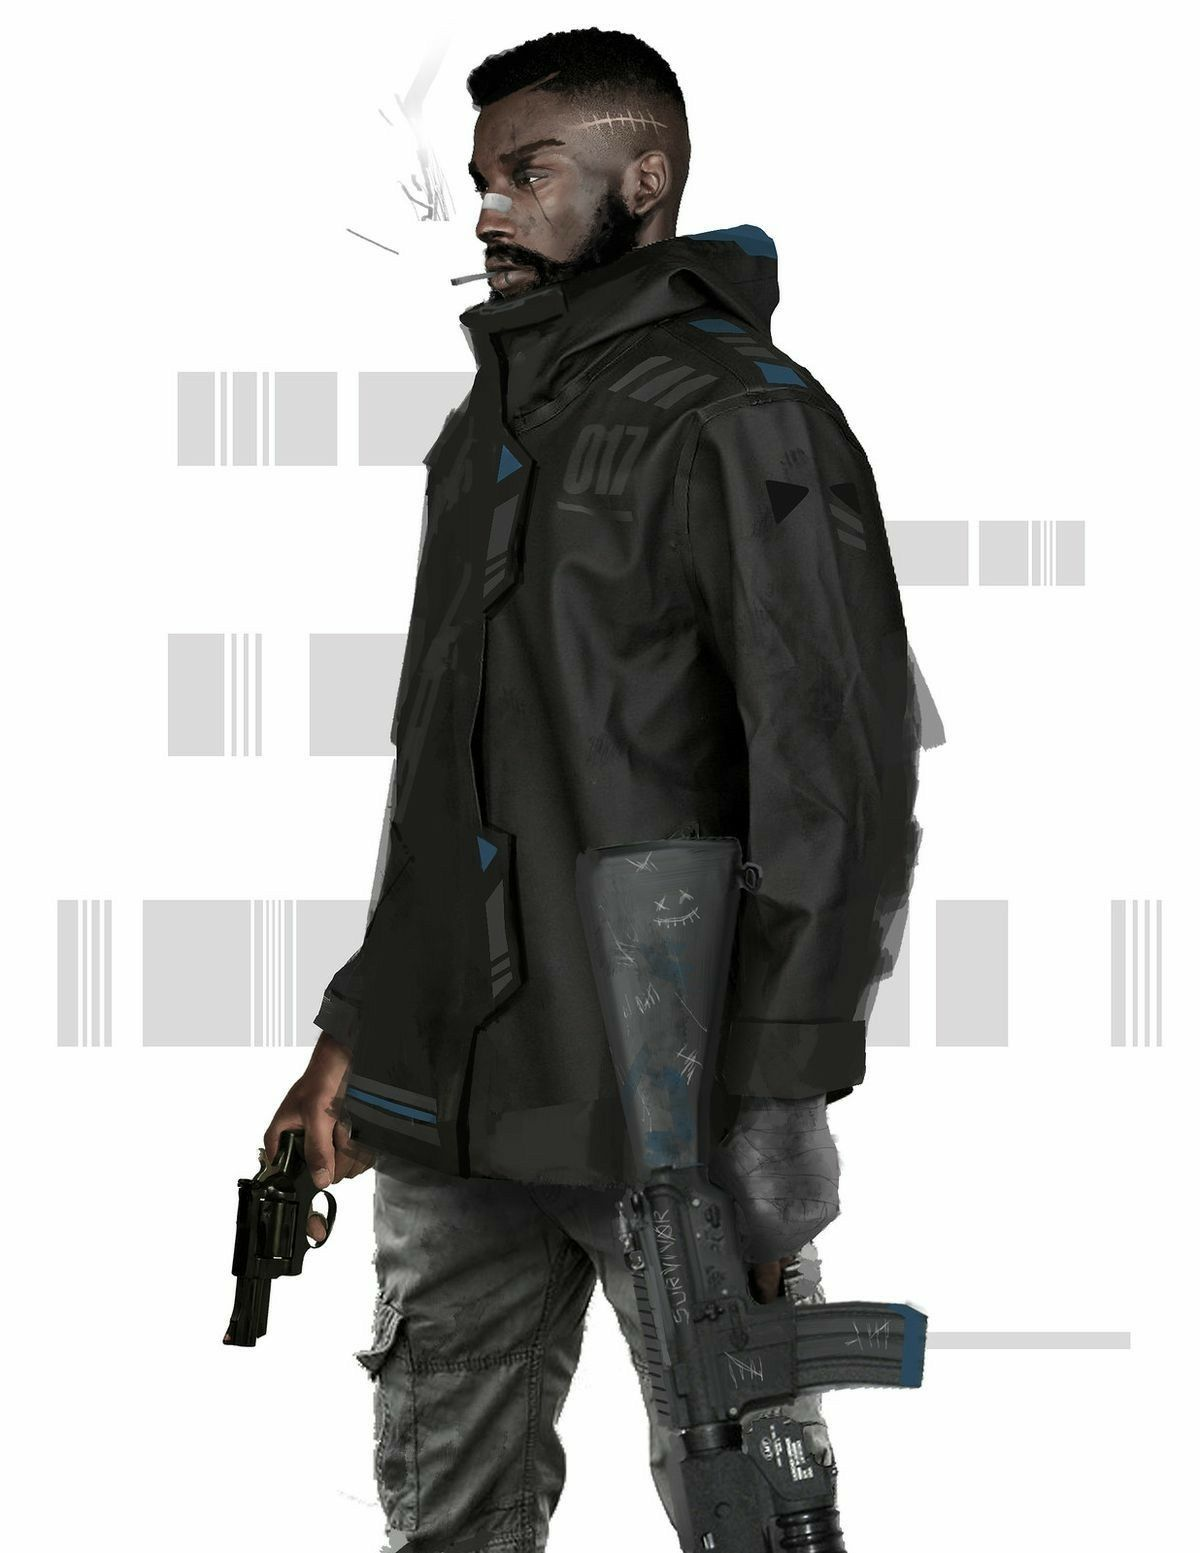 Nwo More Than Likely Cyberpunk Character Black Anime Characters